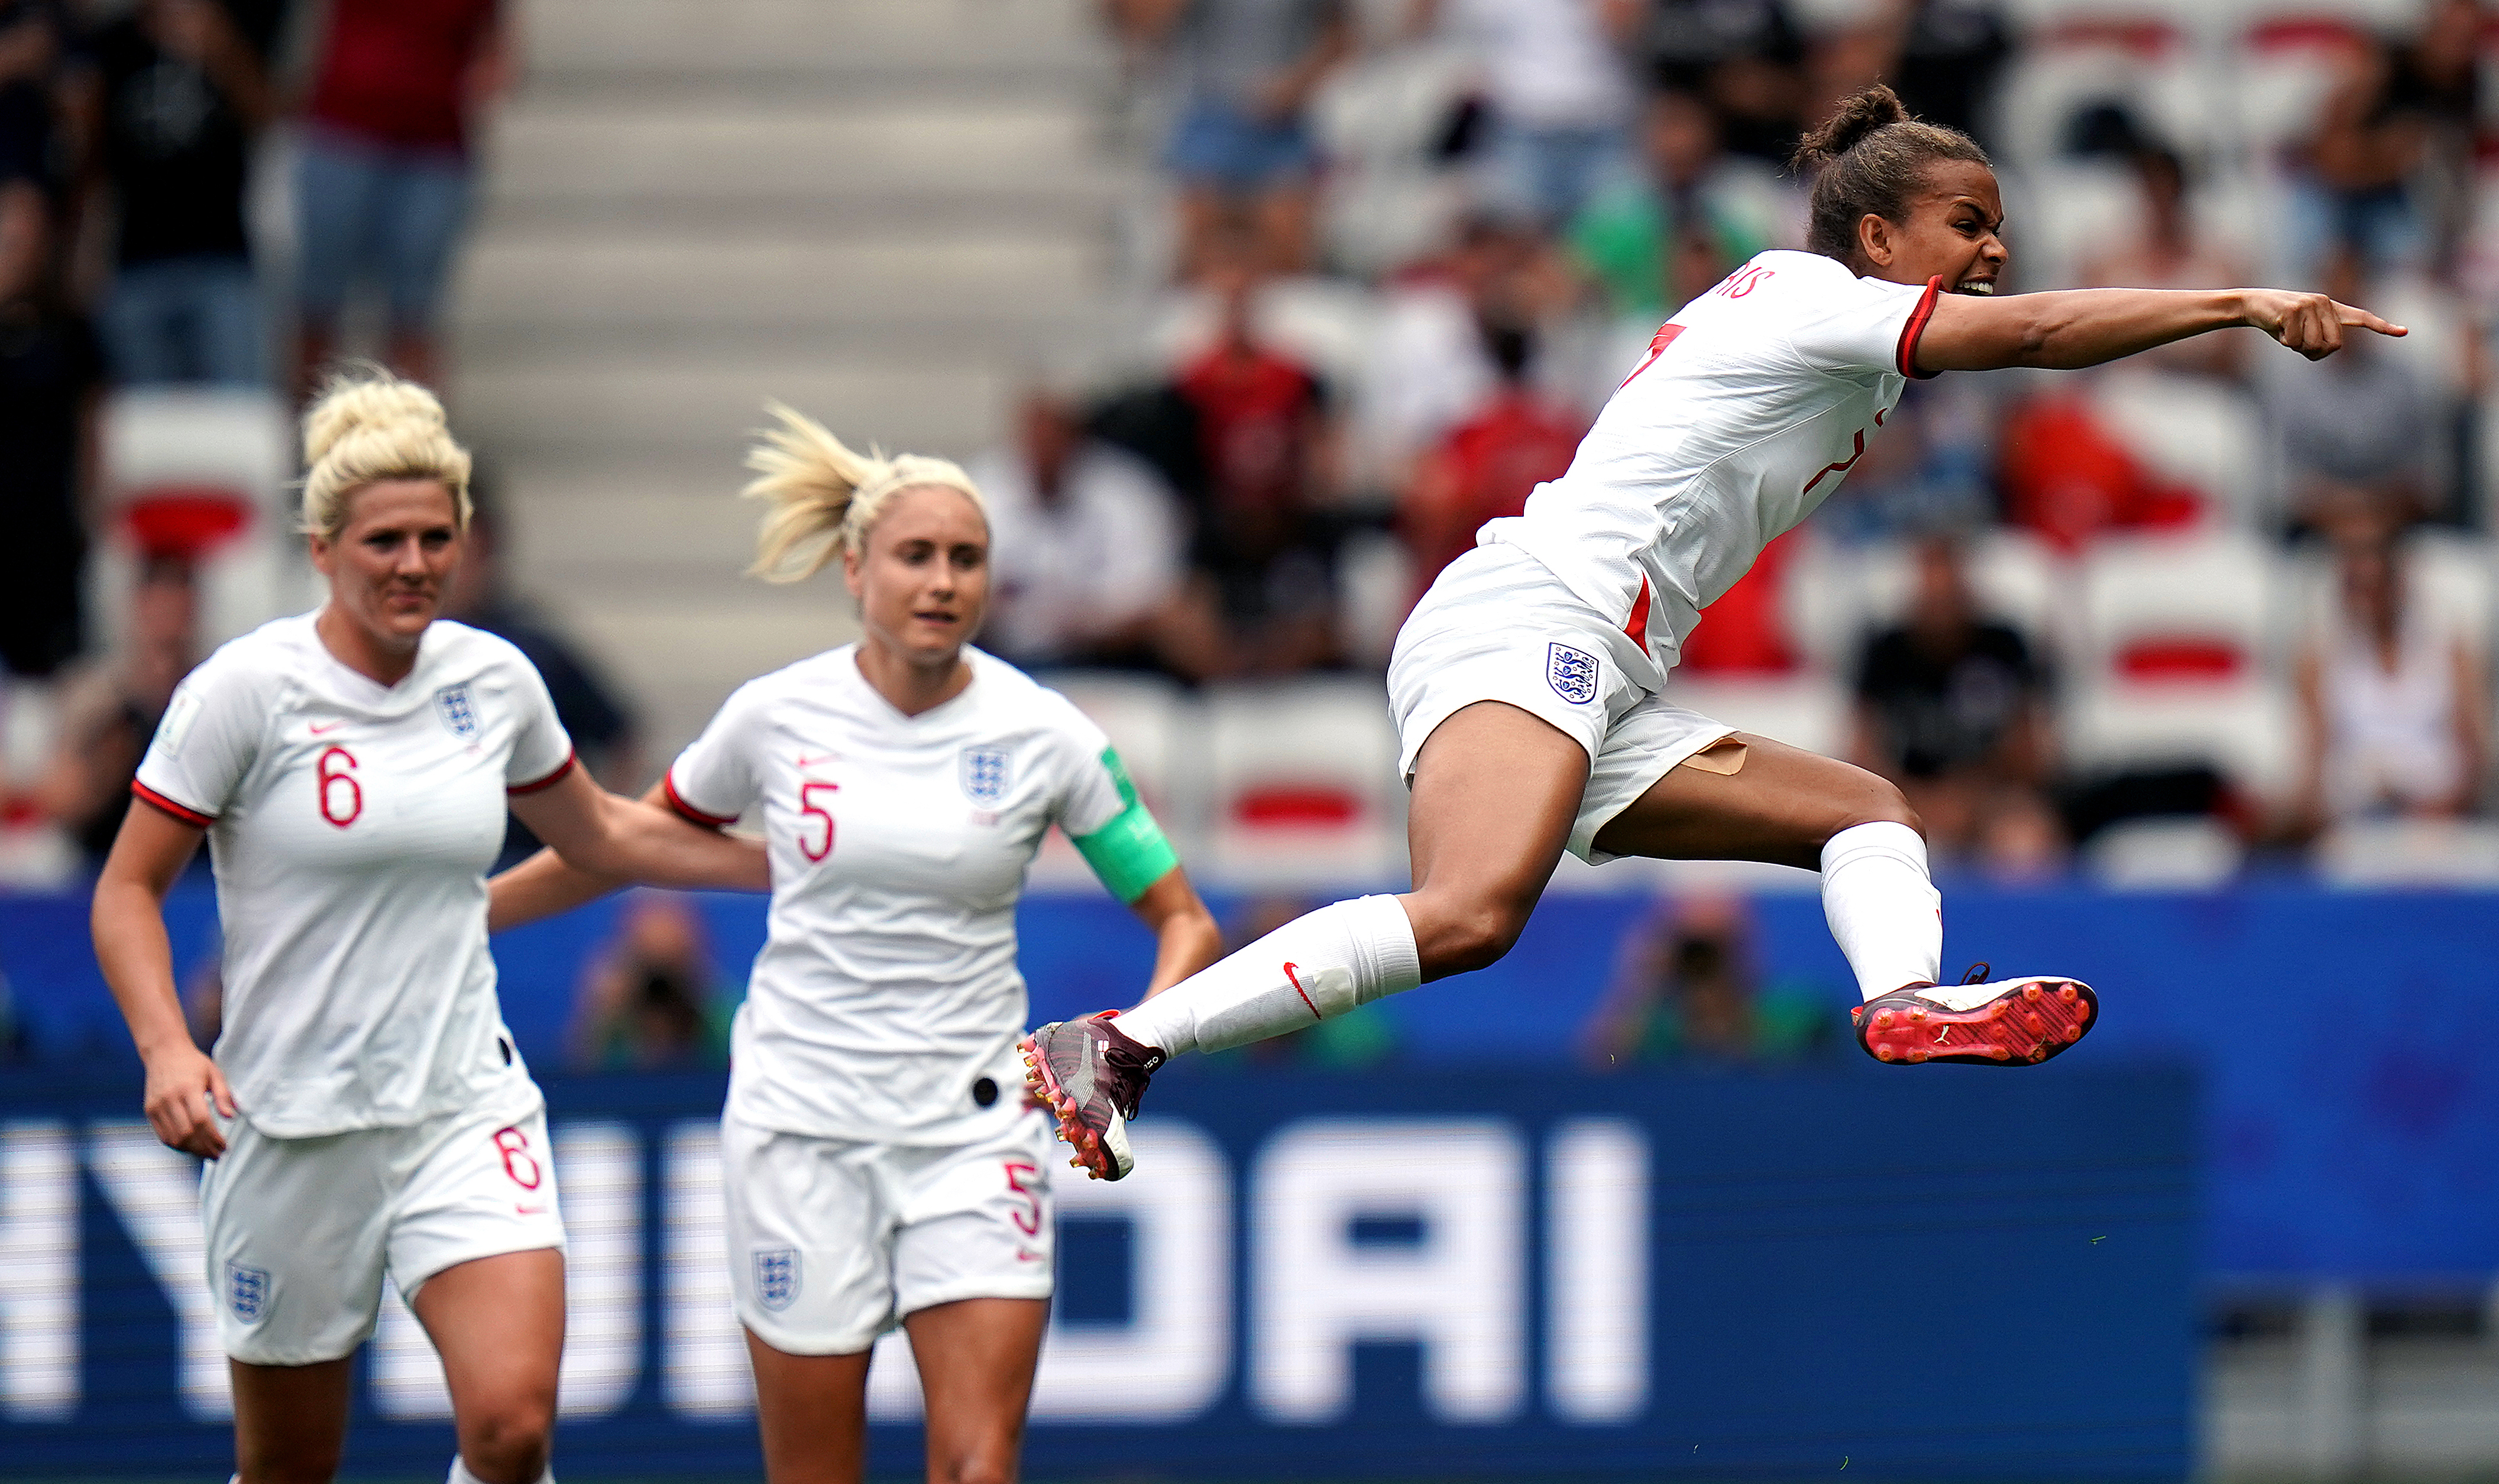 England won their opening game against Scotland